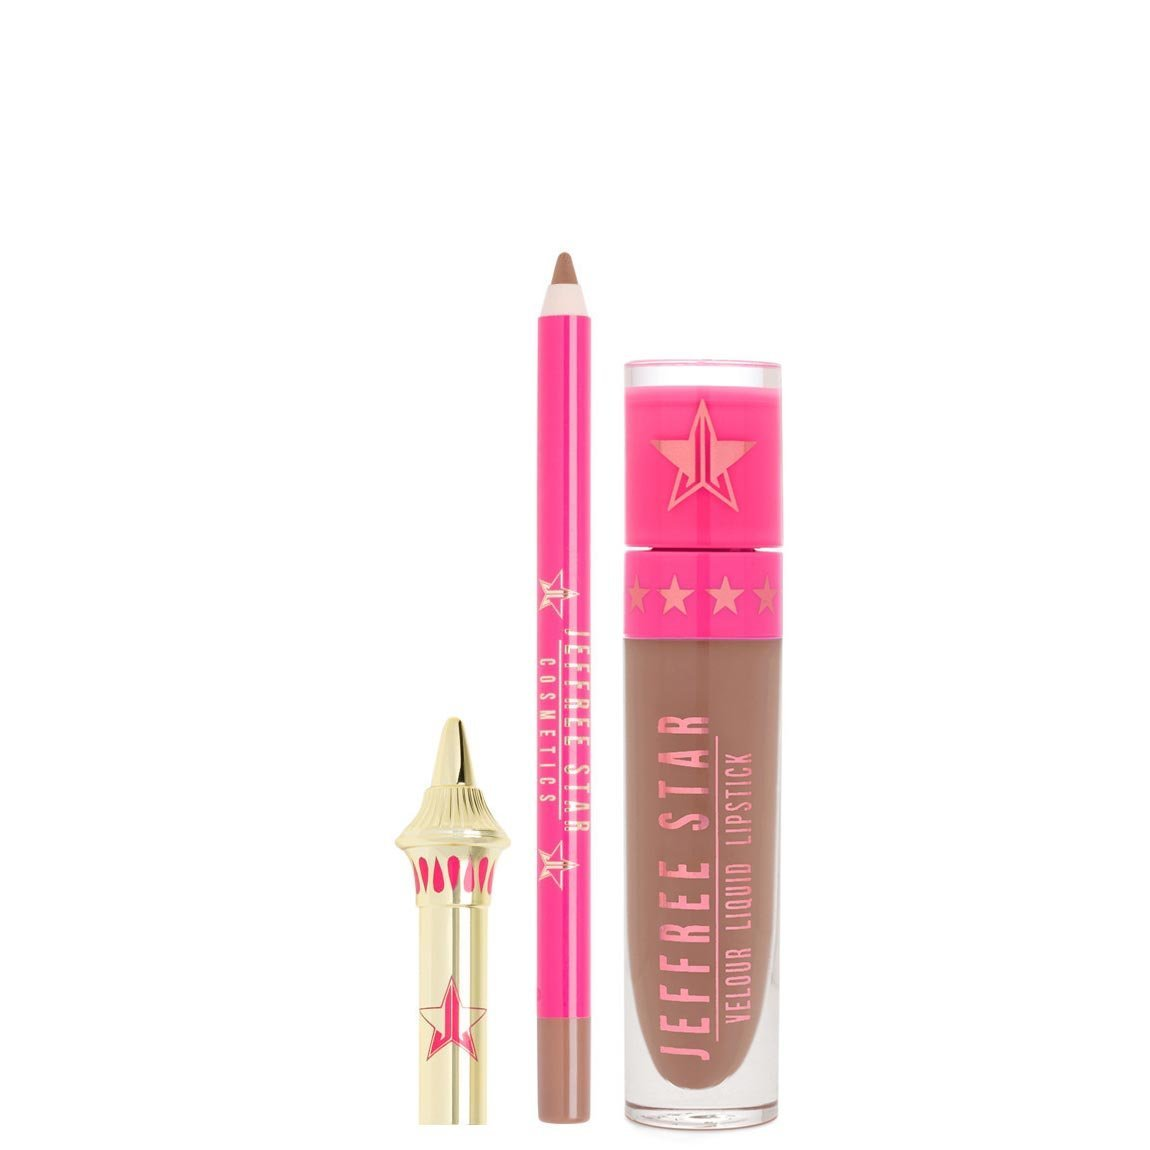 Jeffree Star Cosmetics Velour Lip Kits Posh Spice